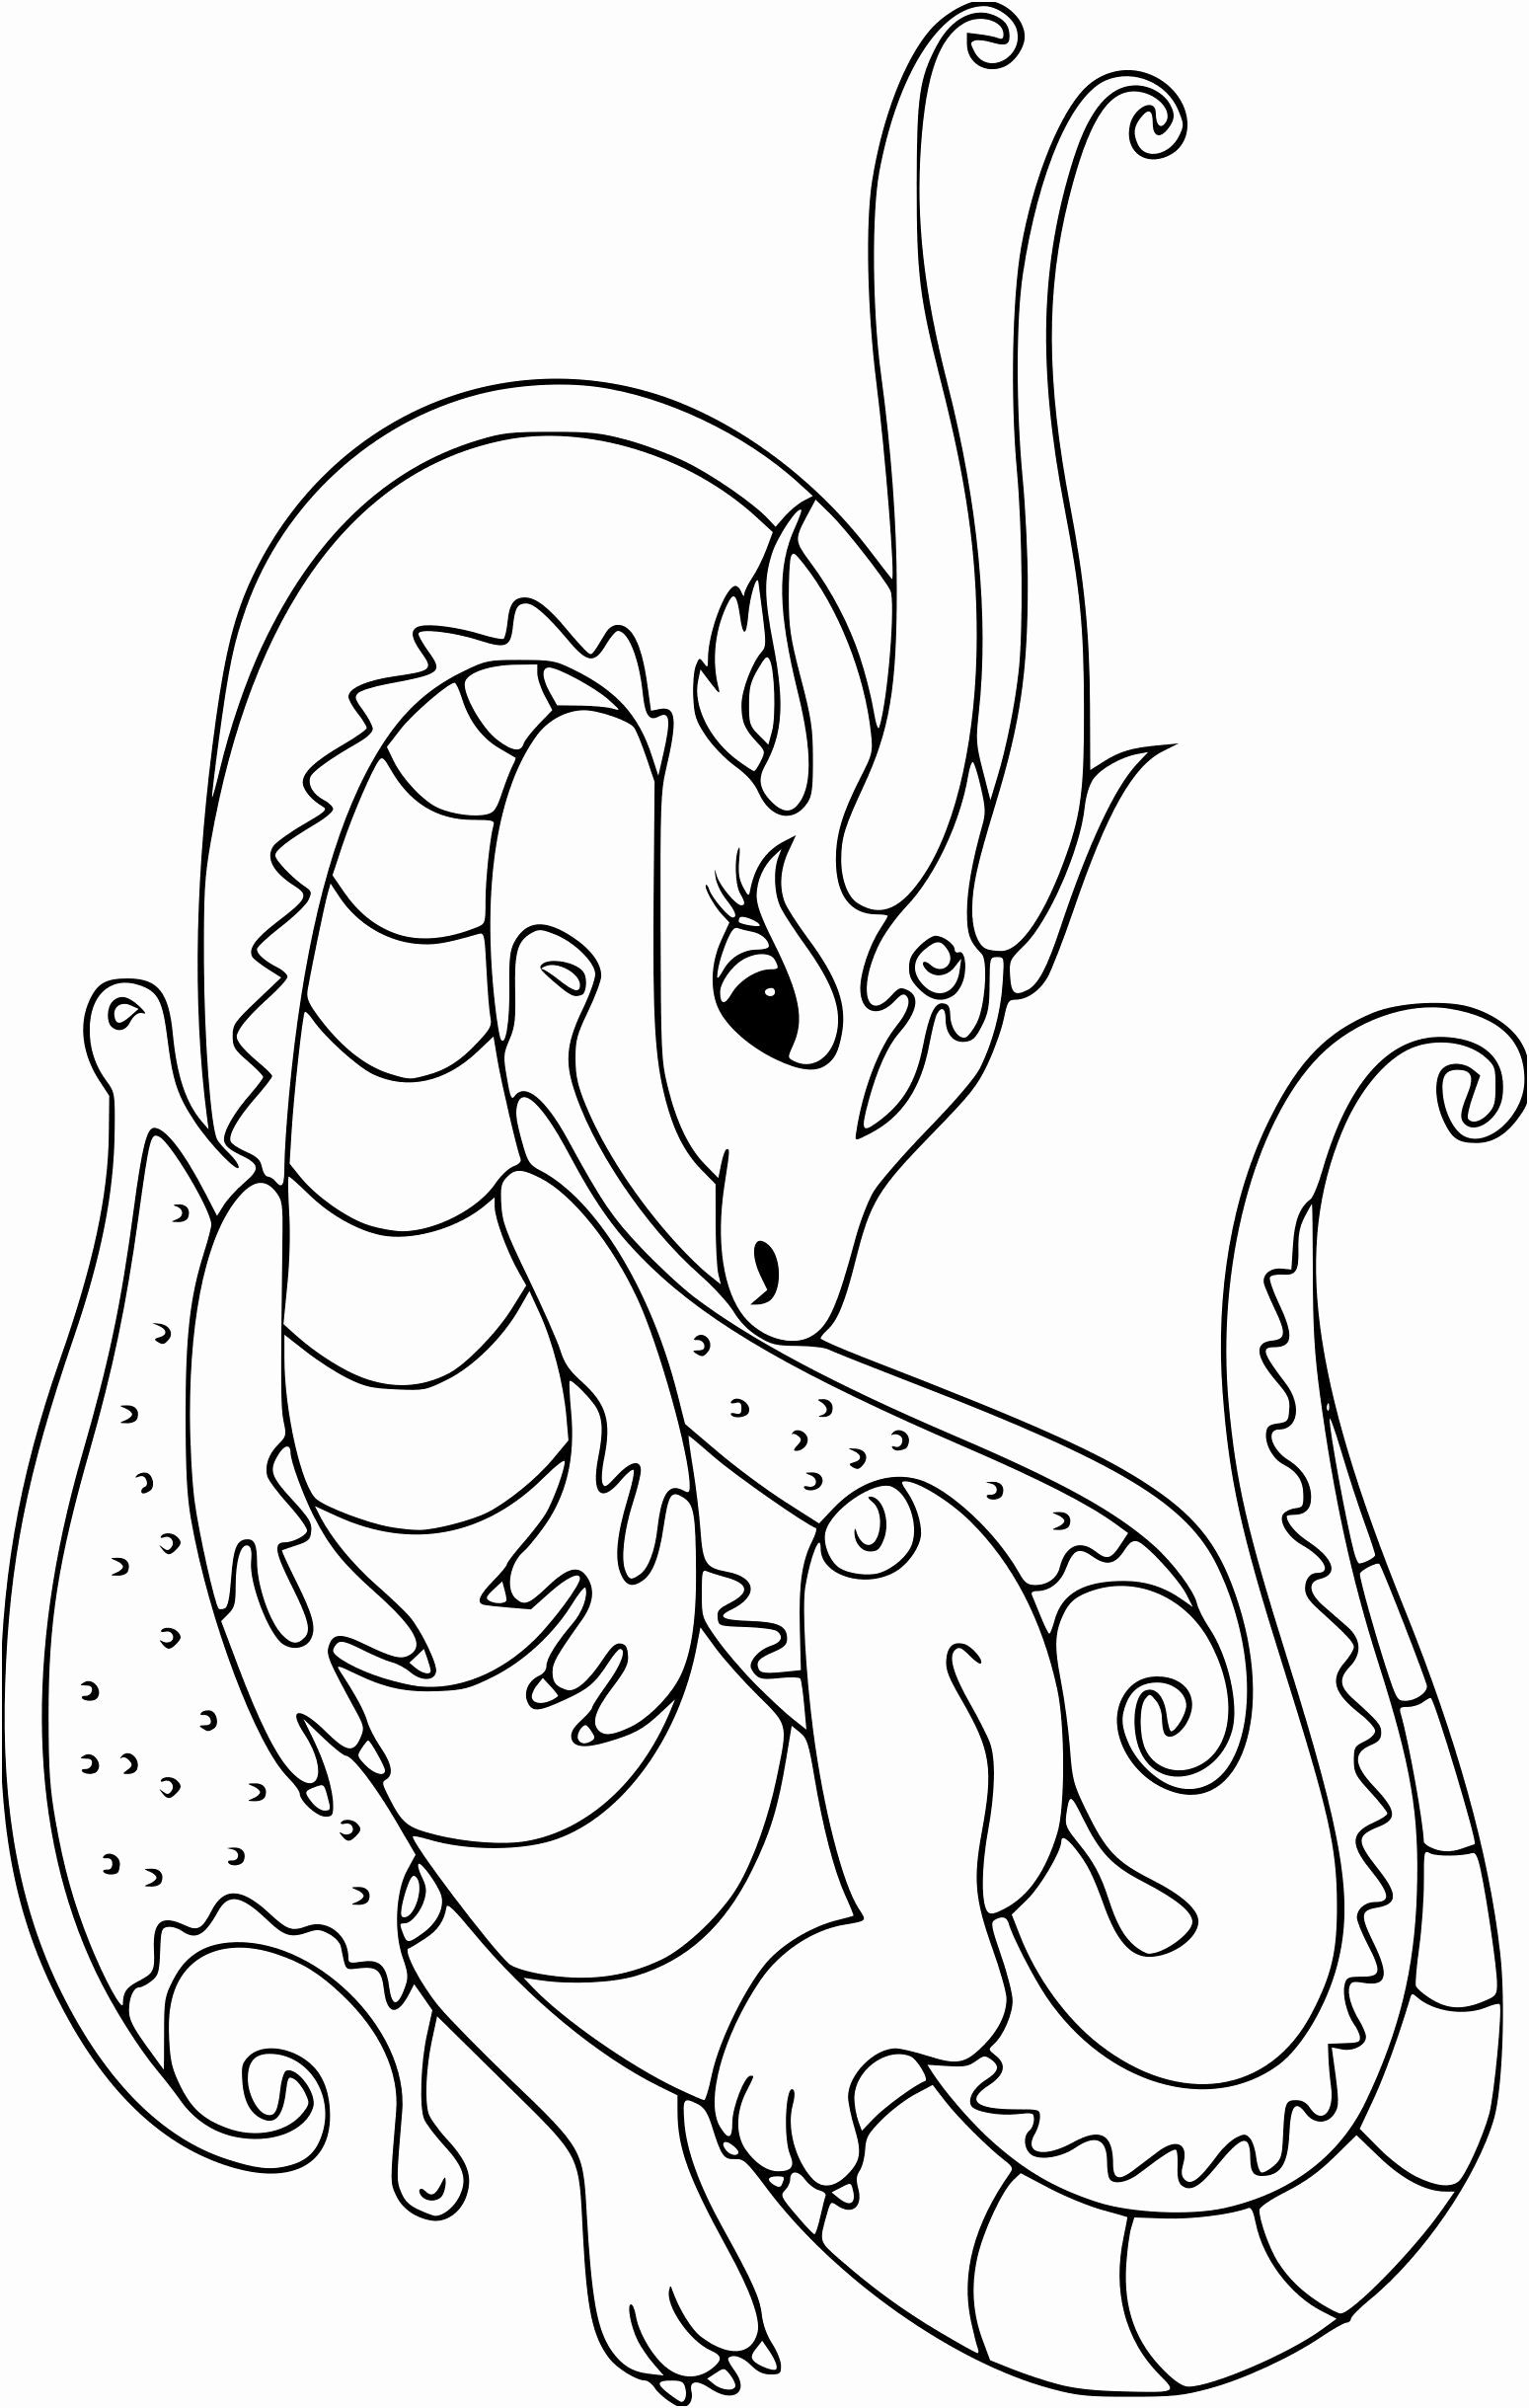 Dragon Coloring Pages For Kids Dragon Coloring Page Free Coloring Pages Coloring Pictures